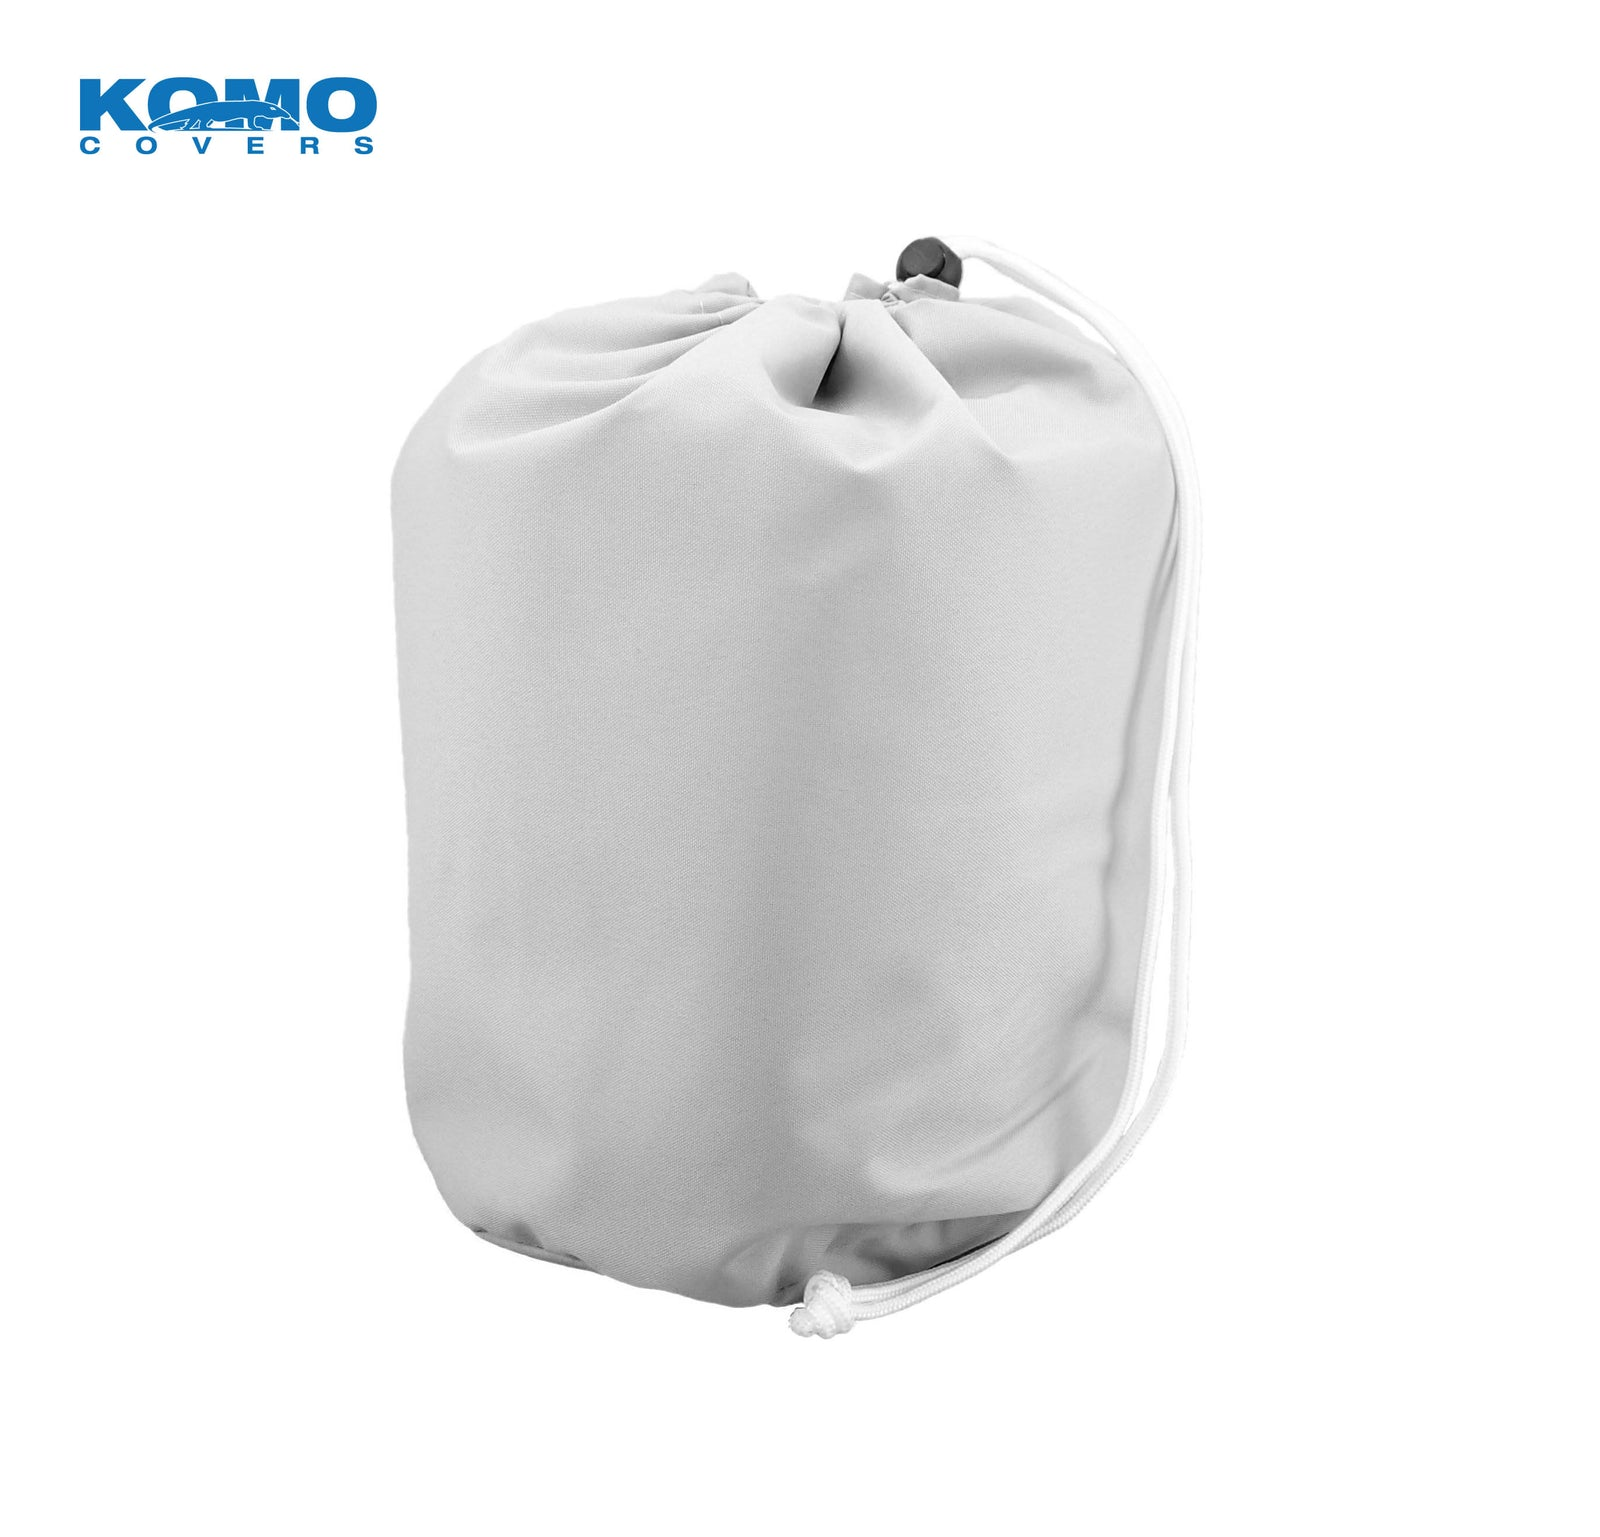 Inflatable Dinghy Cover - Storage Bag